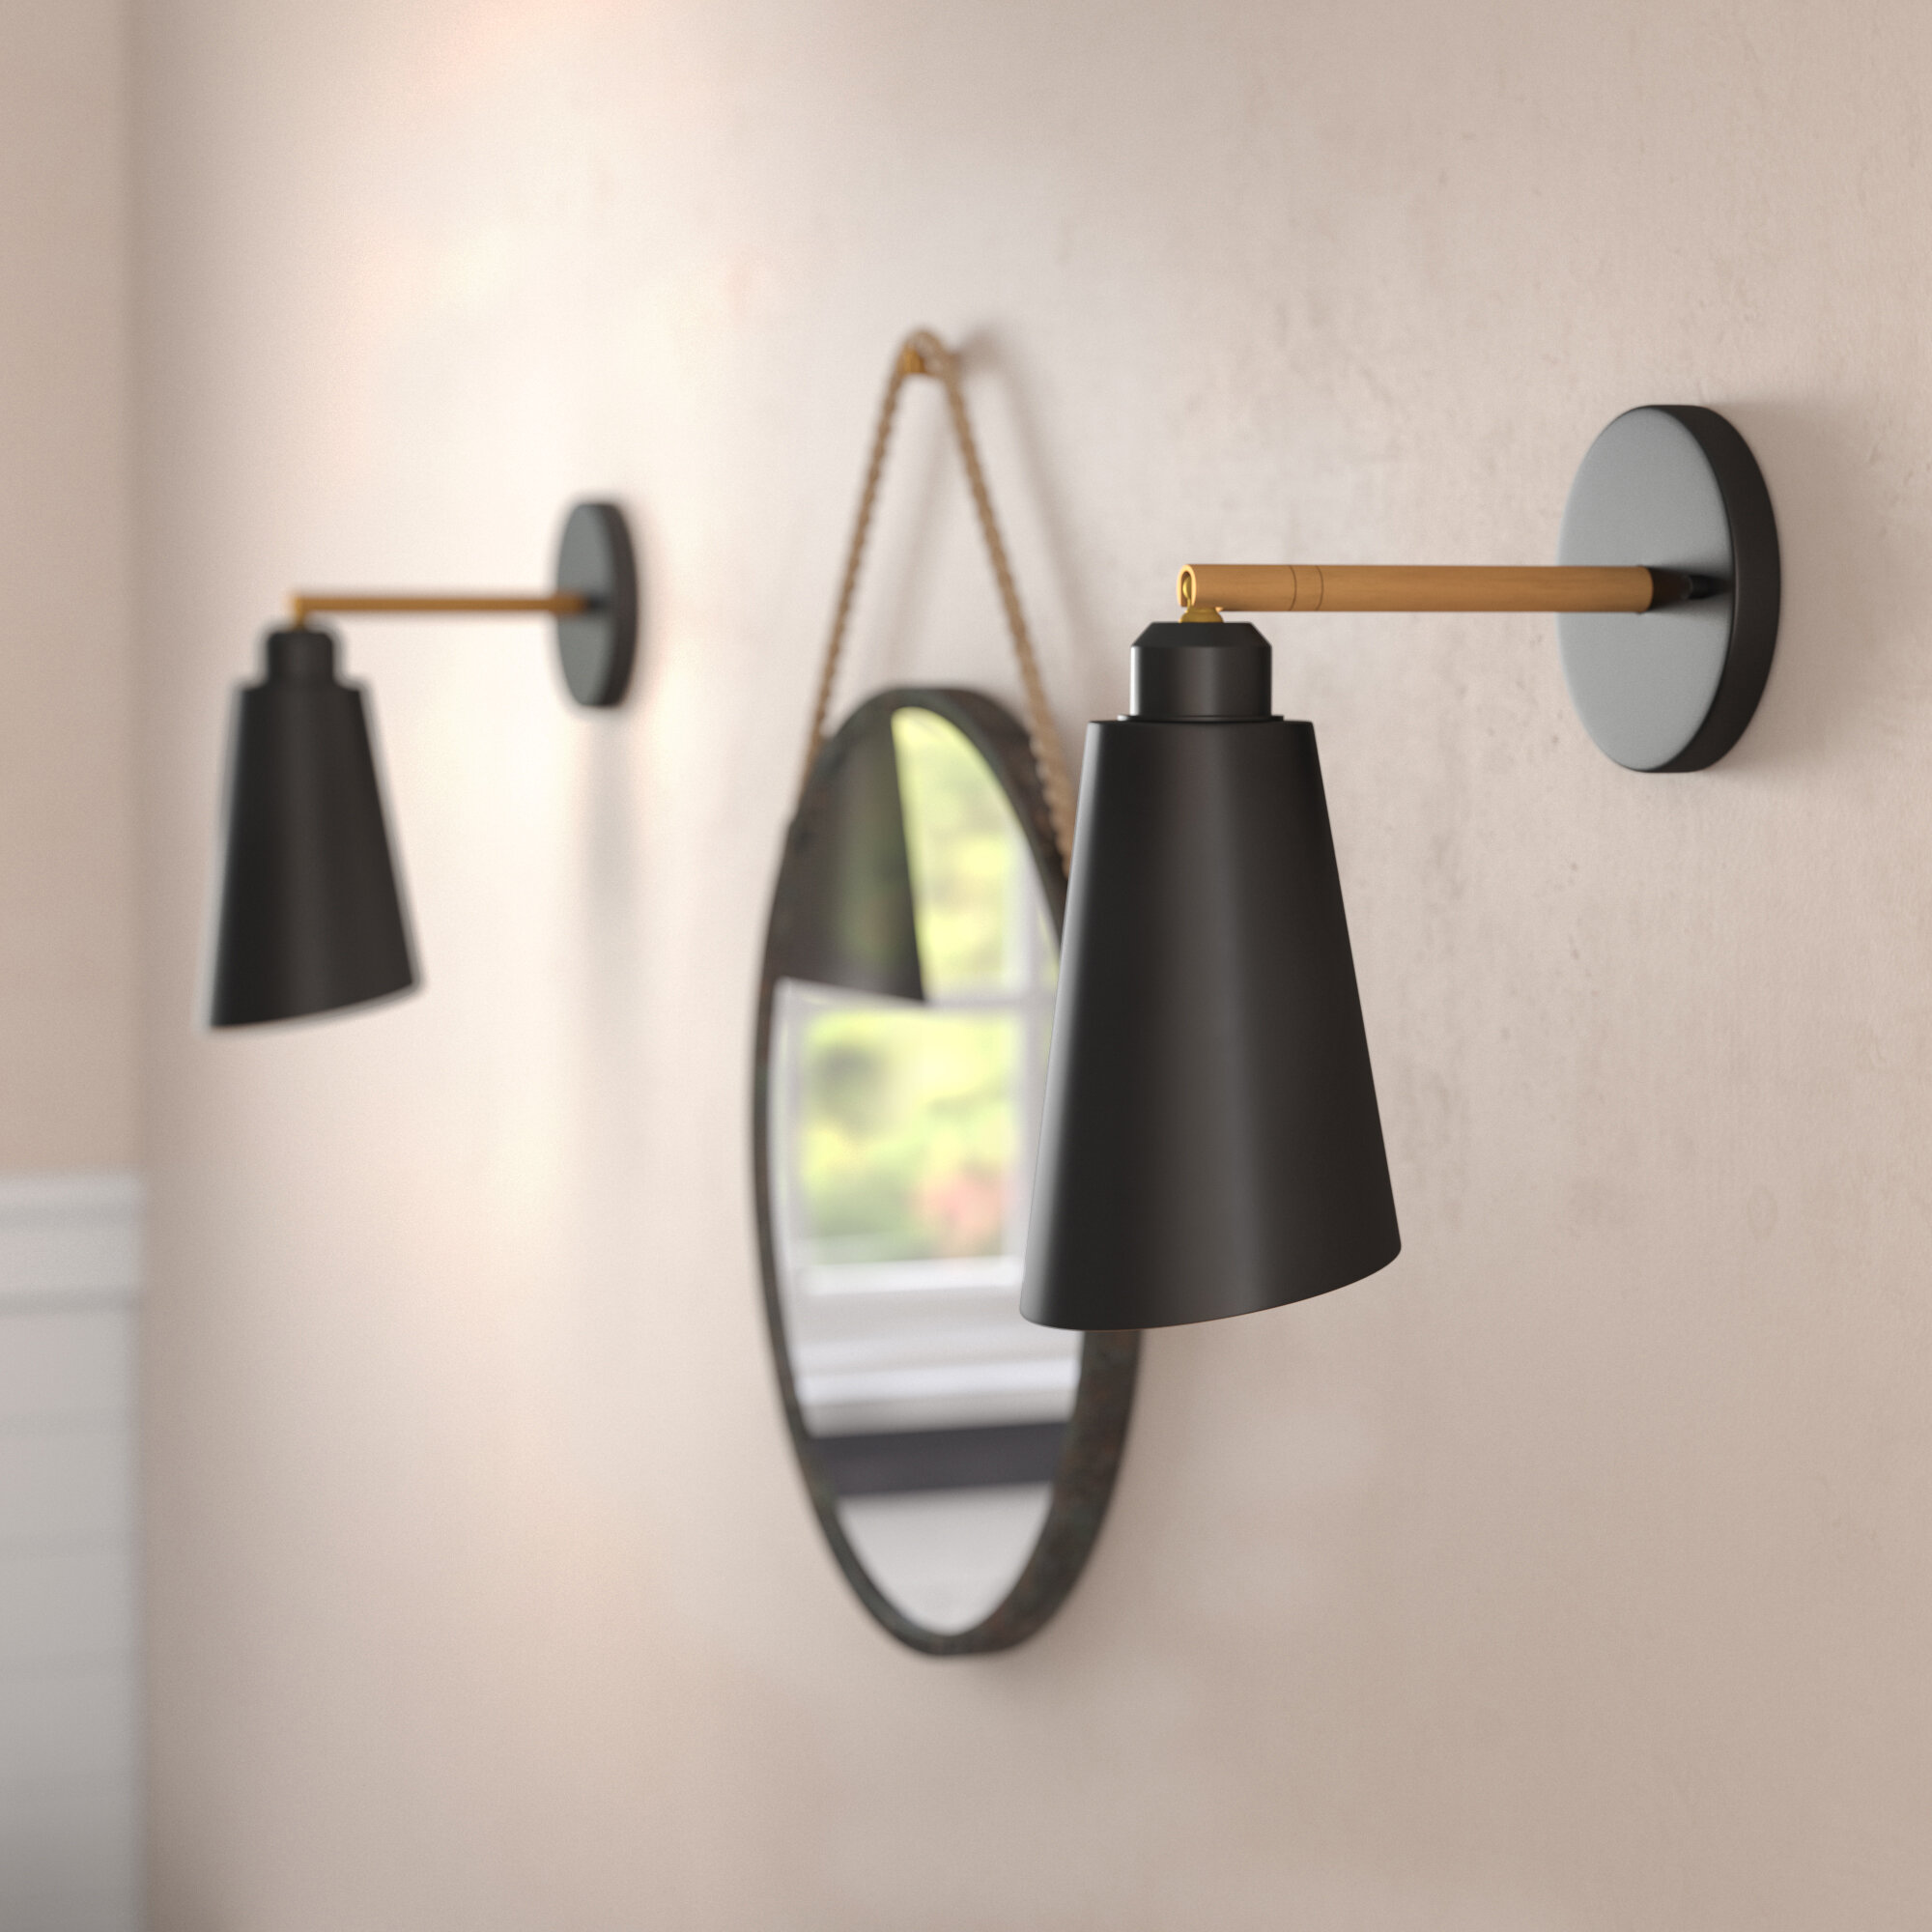 buy online fc122 f98fc Bedroom Wall Sconces | Wayfair